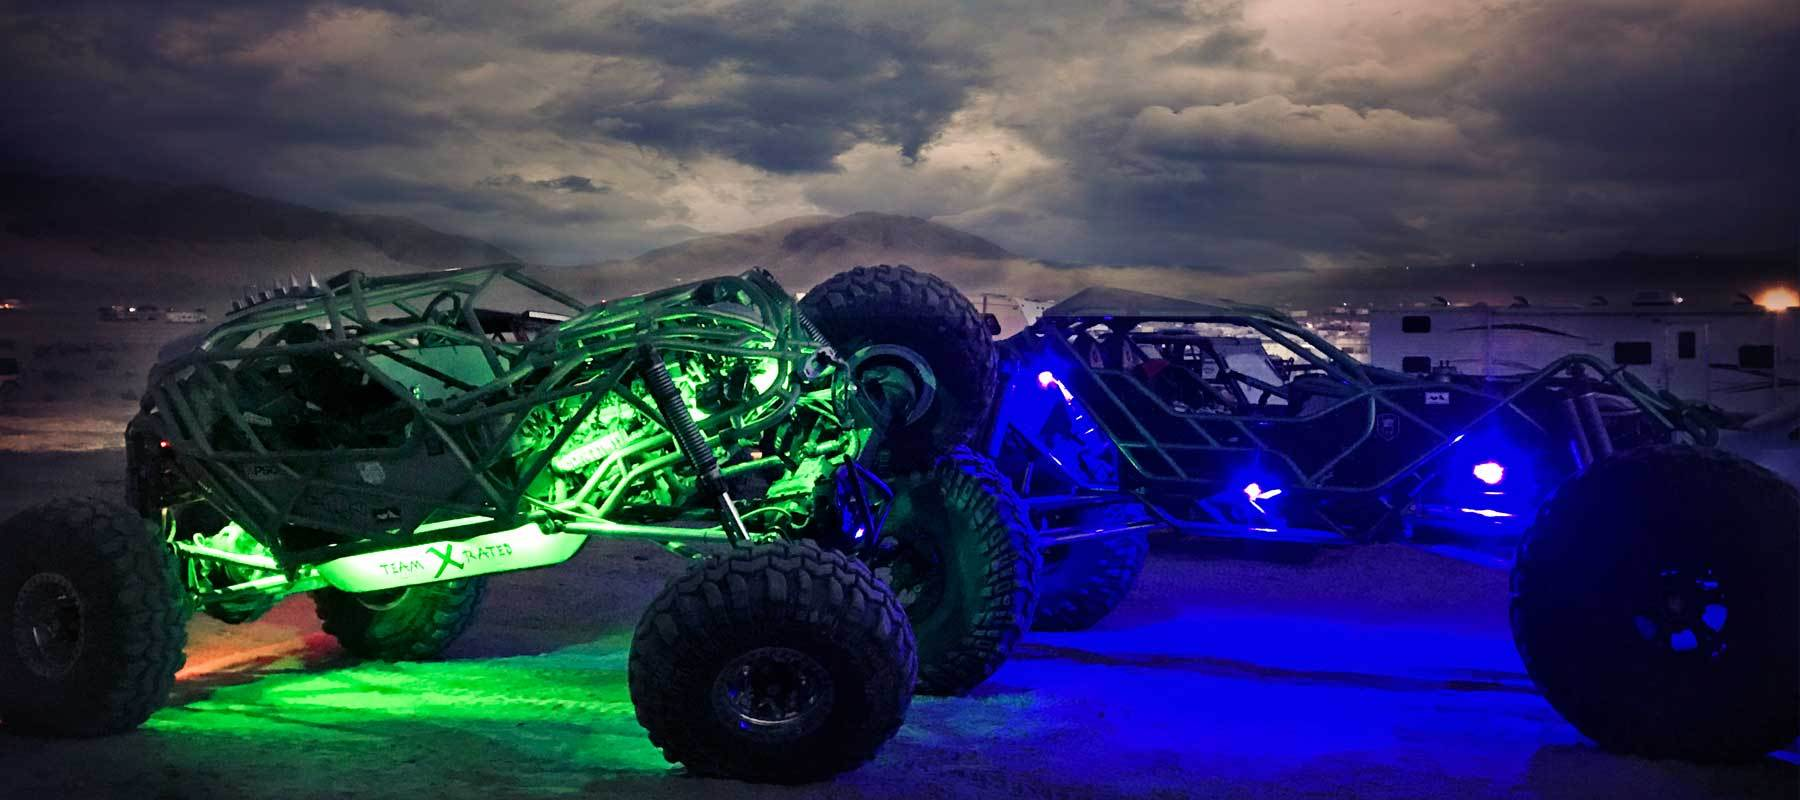 LED rock lights jeep the monster from LUX